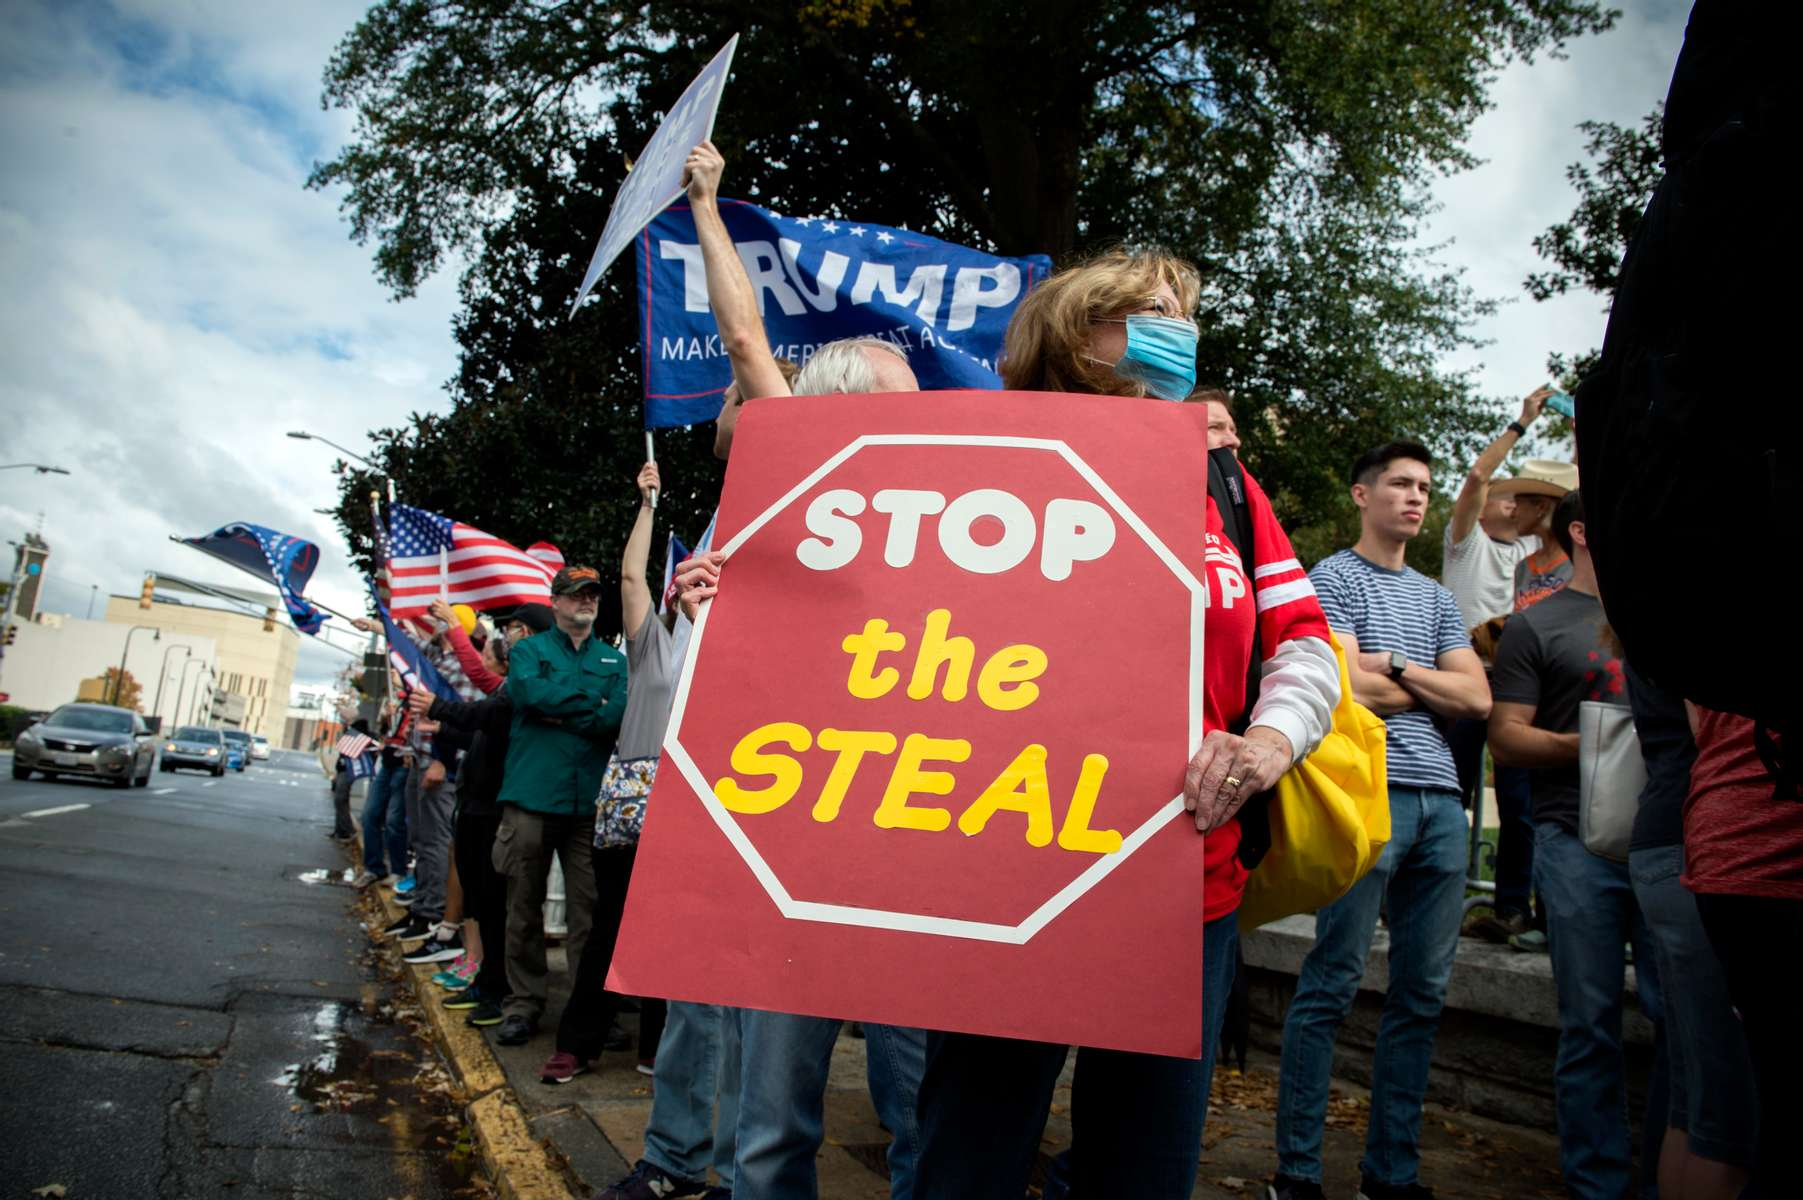 Republican Trump supporters protest what they claim are illegal mail-in votes in Georgia election at 'Stop the Steal' demonstration outside Georgia statehouse Saturday, at the same time hour former Vice President Joe Biden was declared  unofficial winner of 2020 presidential election.